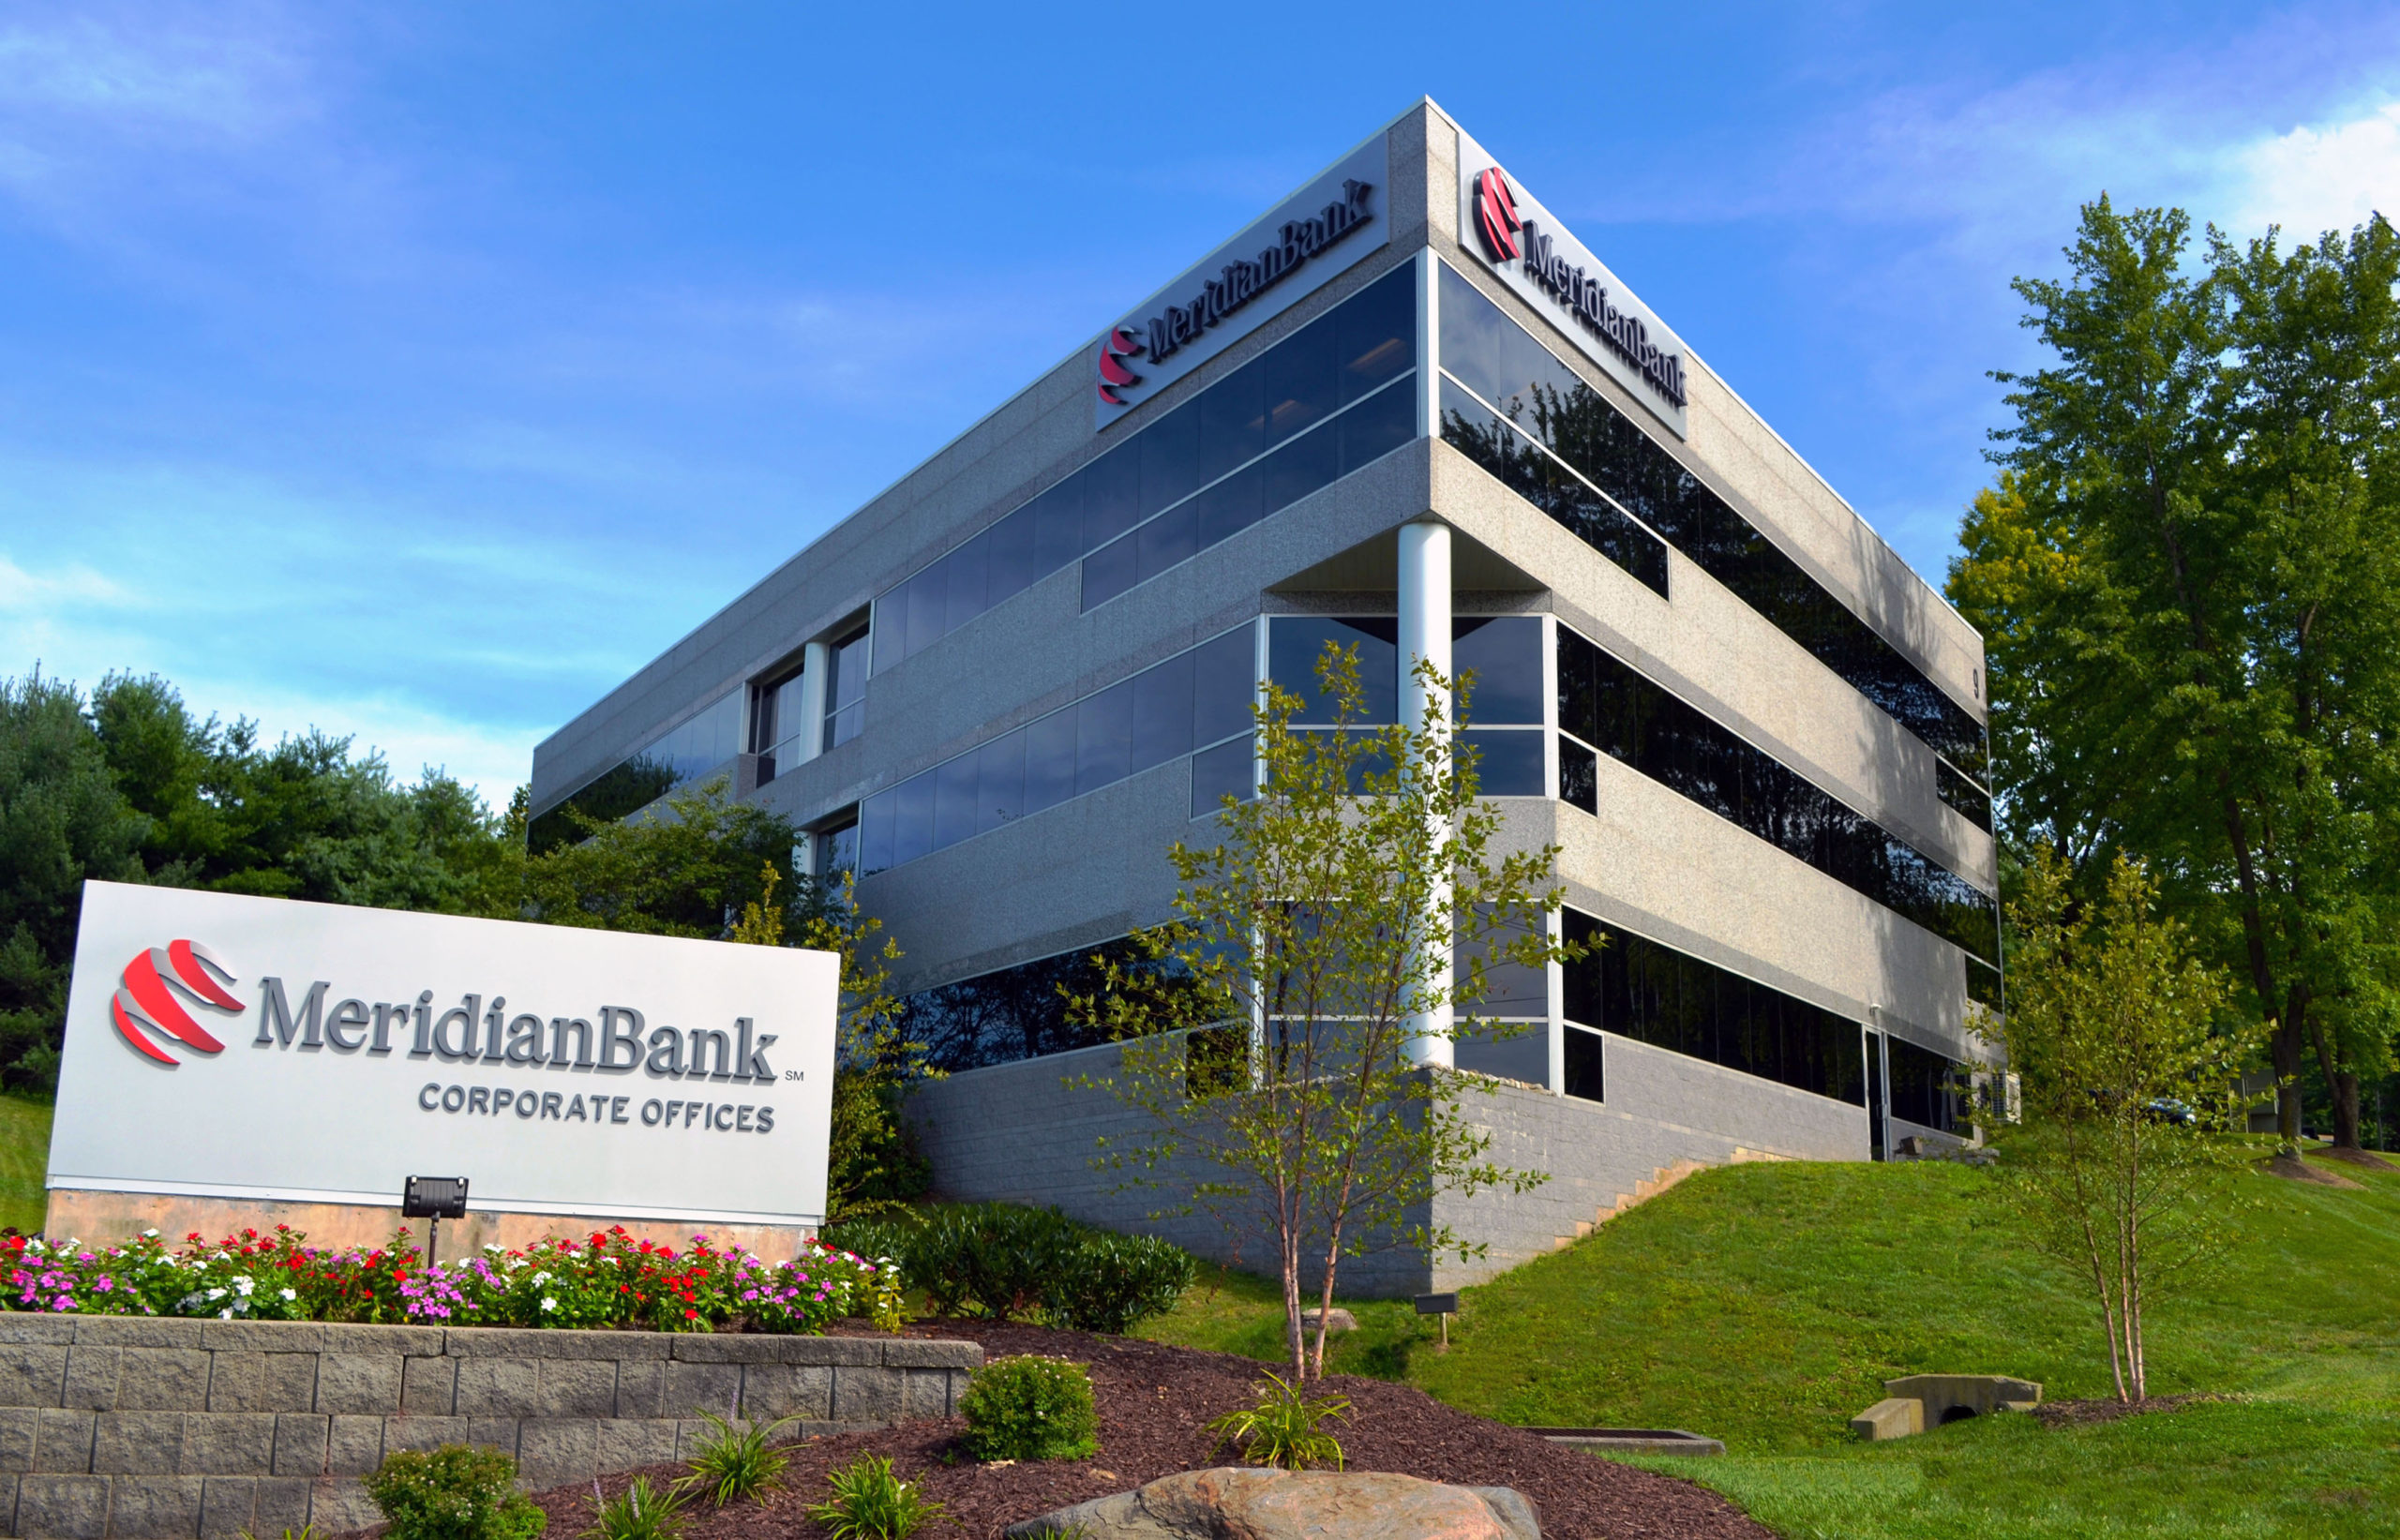 Meridian Bank Donates More Than 500 Pounds of Food to Chester County Food Bank